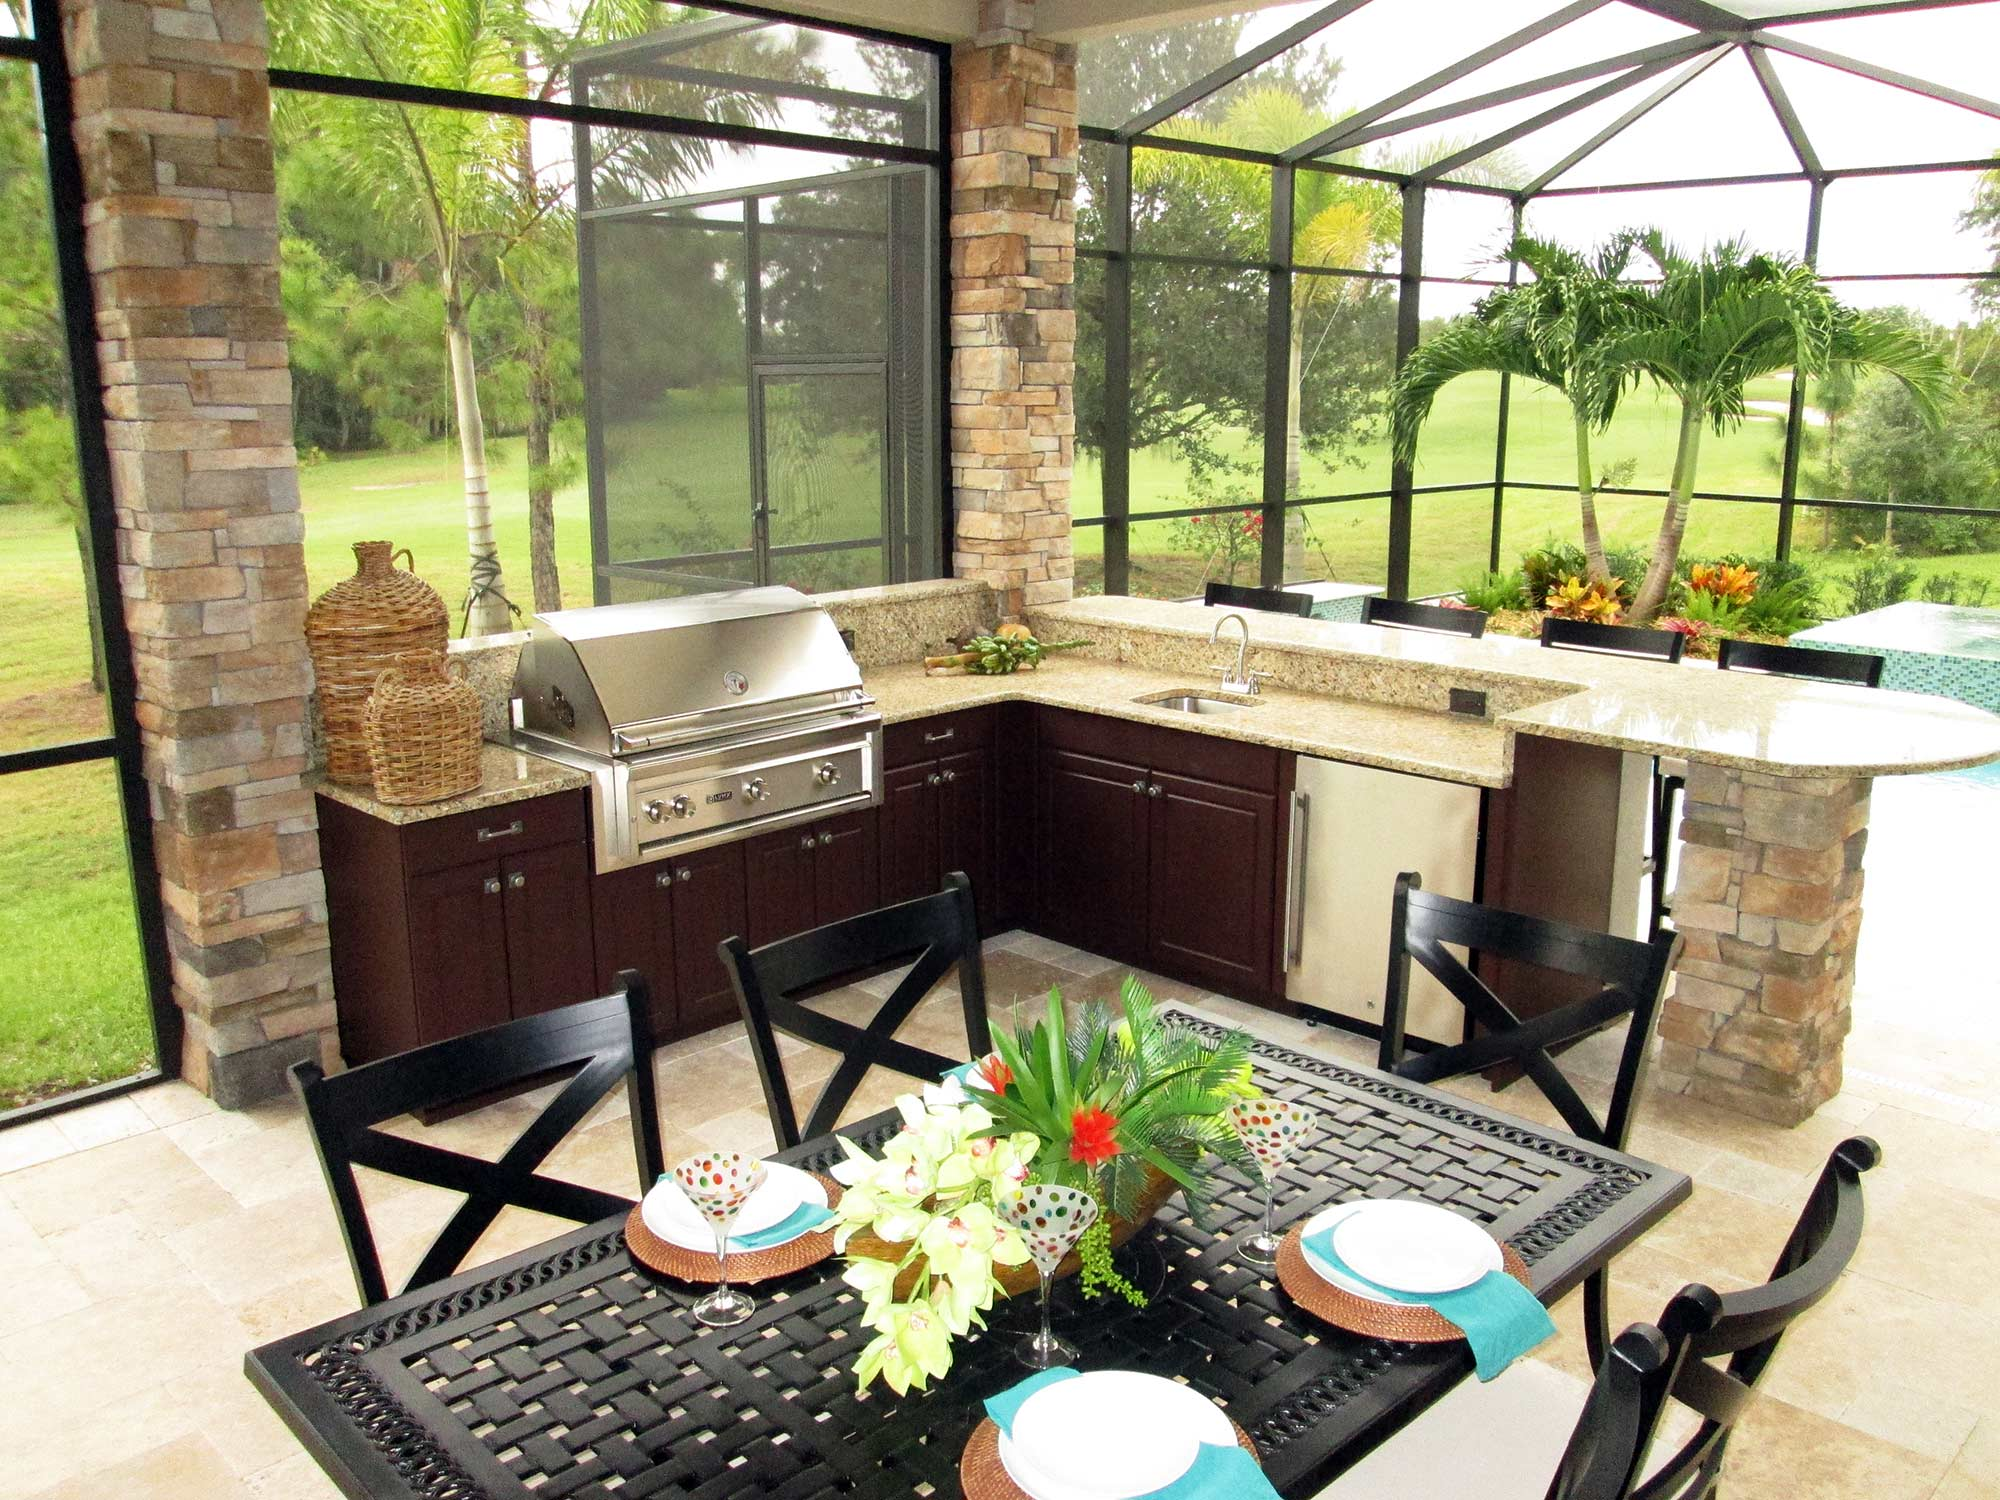 outdoorkitchencabinetsandmore kitchen remodeling tampa Outdoor Kitchen Cabinets and More